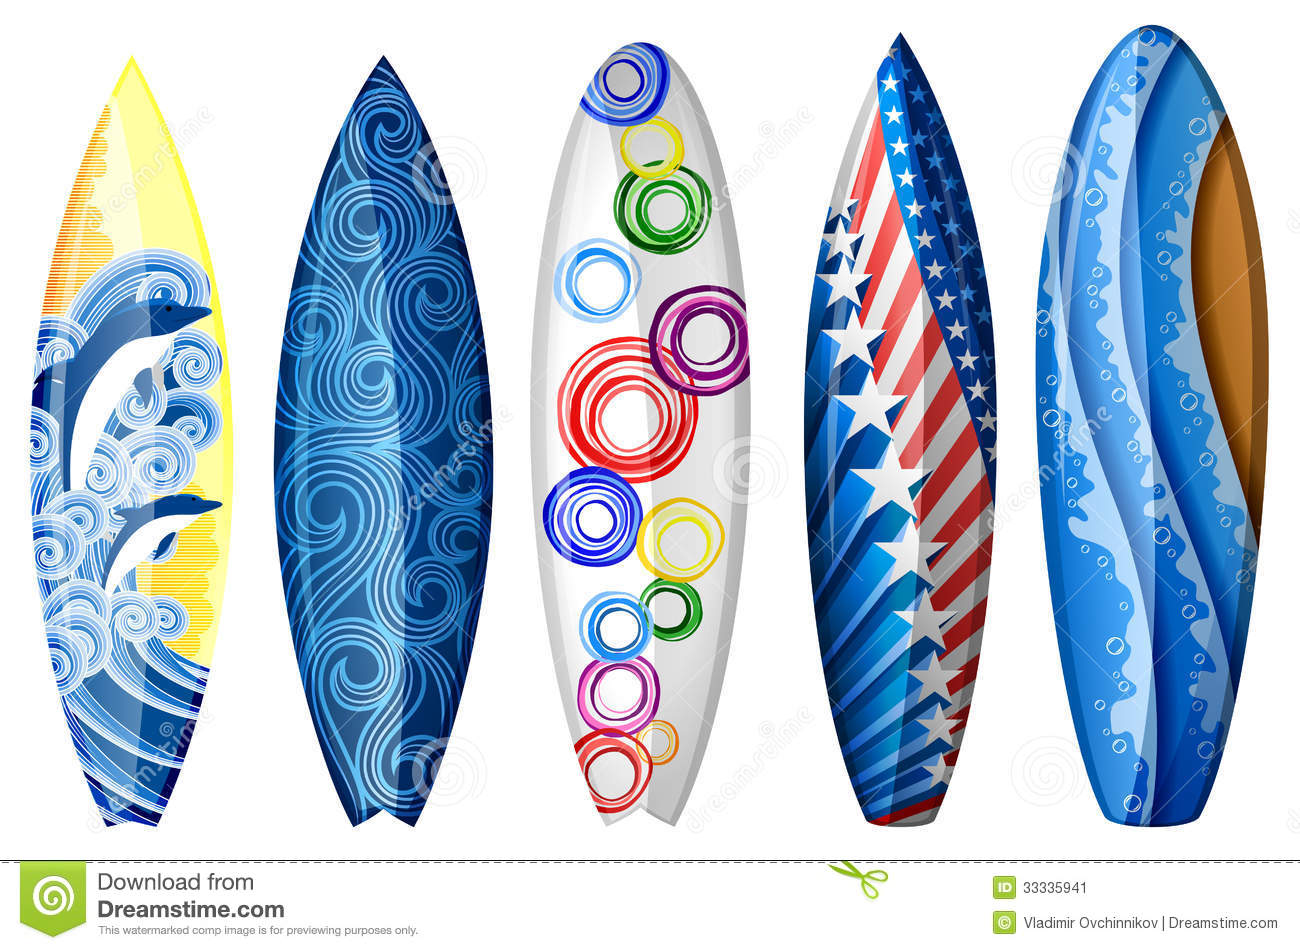 Surfboards stock image image 33335941 for Awesome surfboard designs